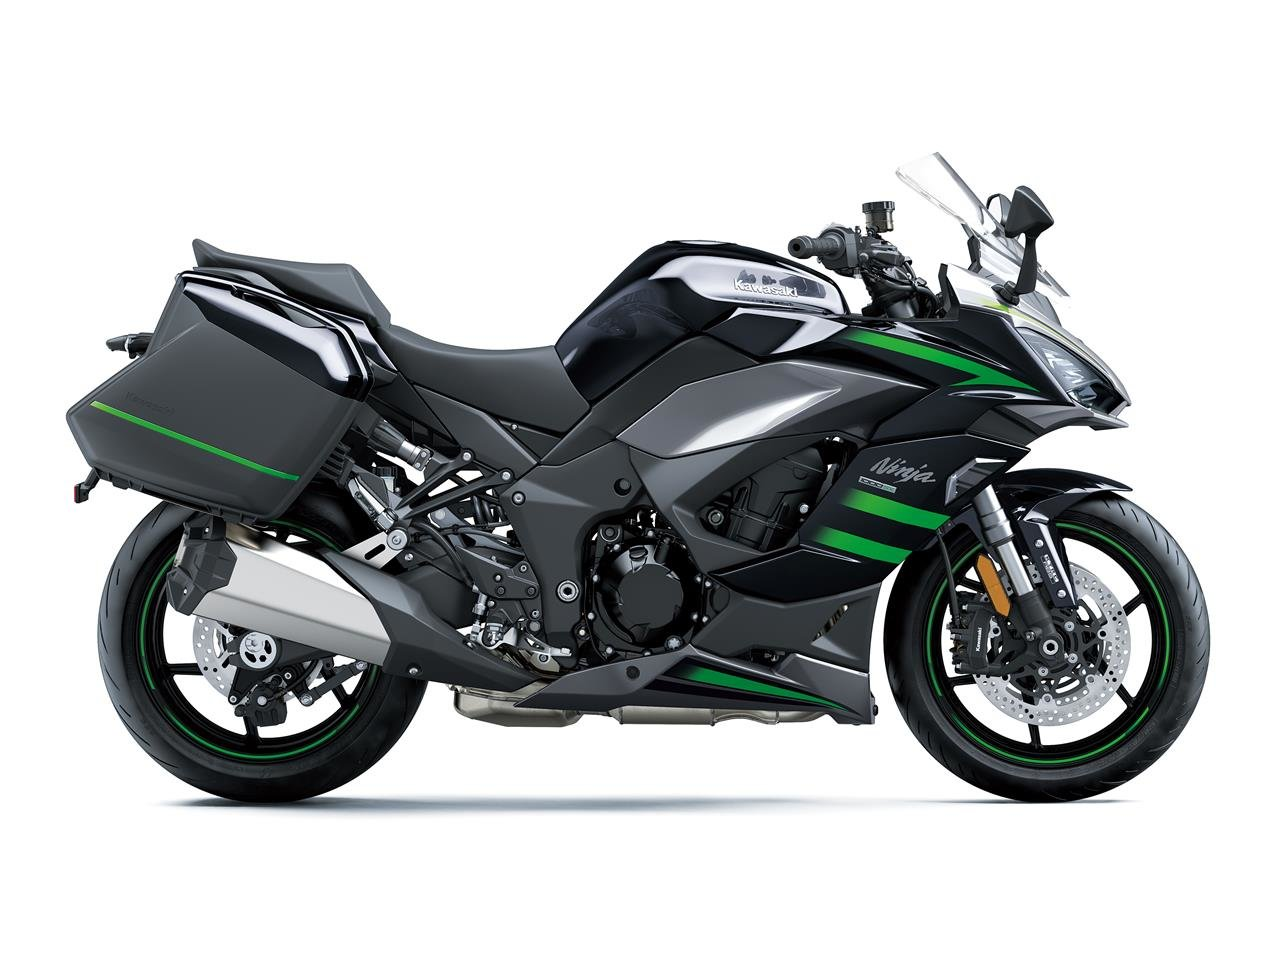 New 2020 Kawasaki Ninja 1000 SX SE Tourer**FREE DELIVERY** For Sale (picture 2 of 6)